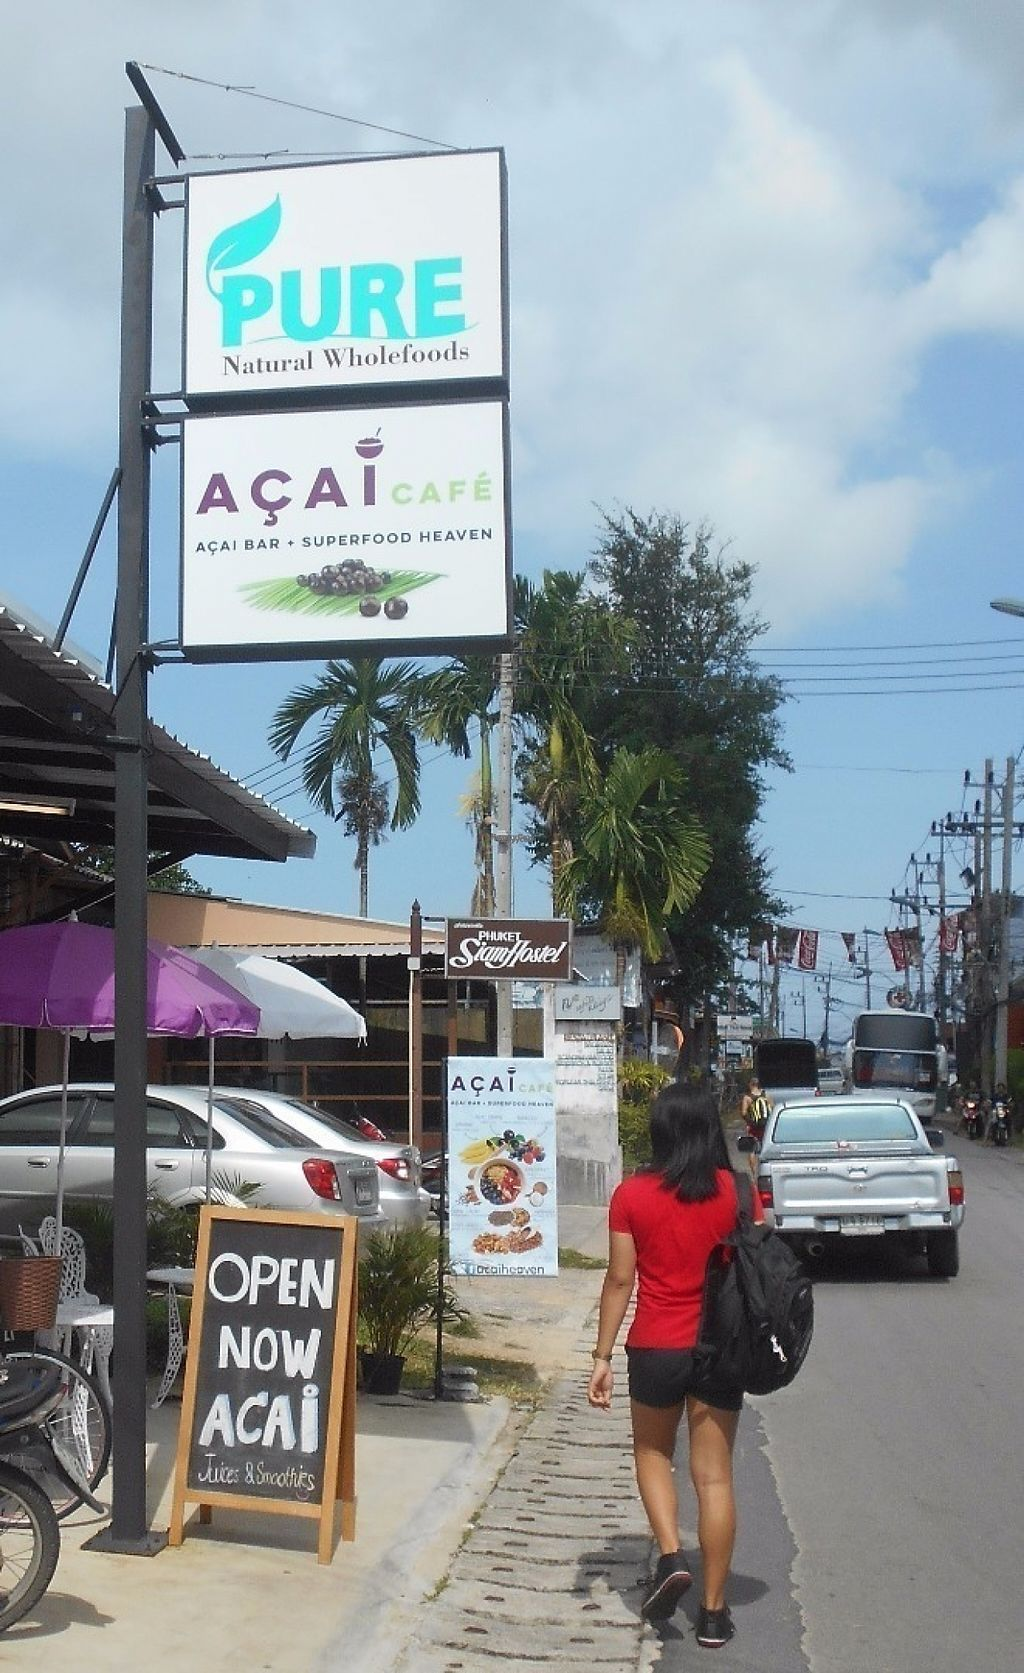 """Photo of CLOSED: Pure Organic Heaven  by <a href=""""/members/profile/Kelly%20Kelly"""">Kelly Kelly</a> <br/>Acai Cafe > sister store just up the road <br/> August 3, 2016  - <a href='/contact/abuse/image/61240/164888'>Report</a>"""